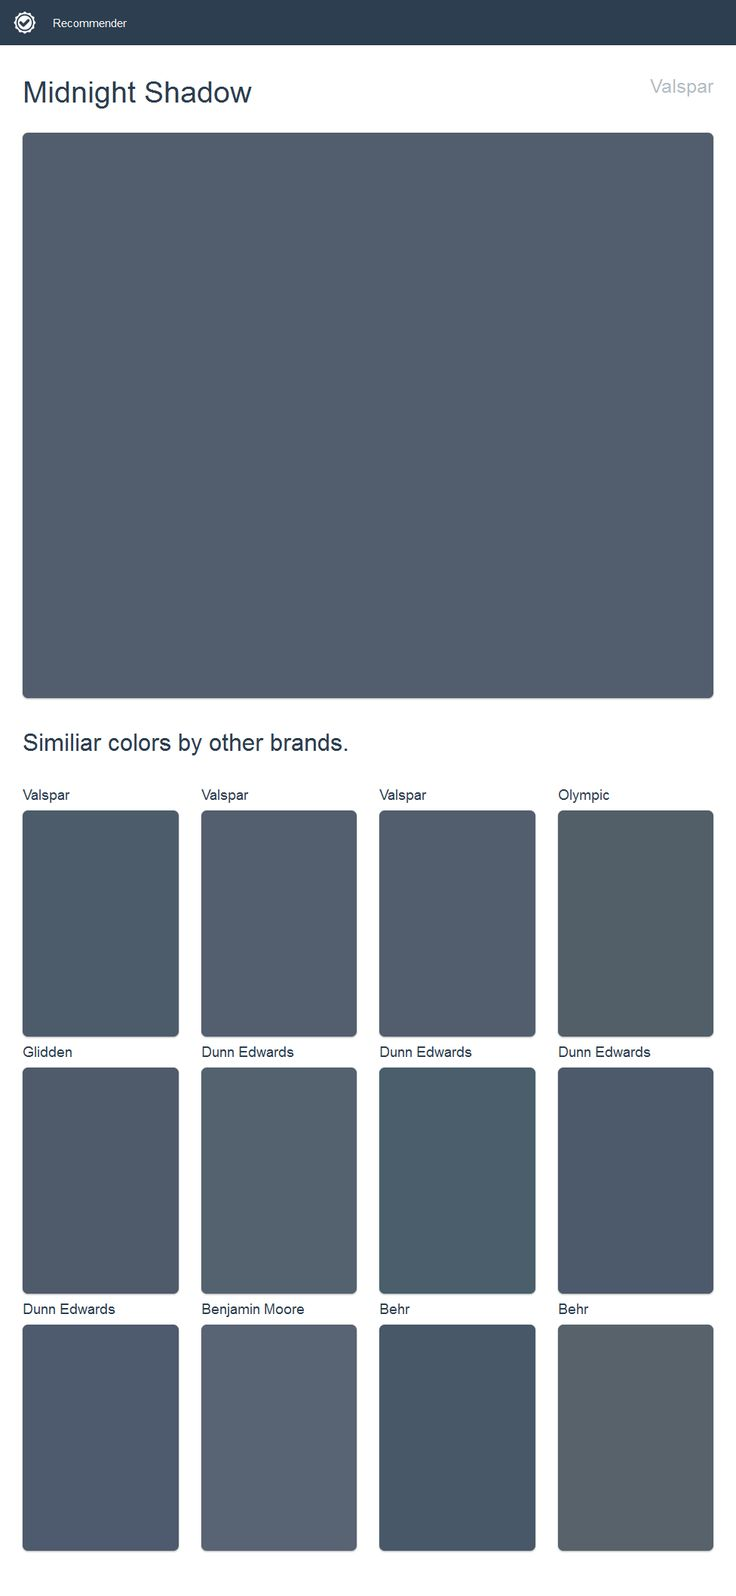 Best 25 valspar paint colors ideas on pinterest valspar paint click the image to see similiar colors by other brands nvjuhfo Image collections